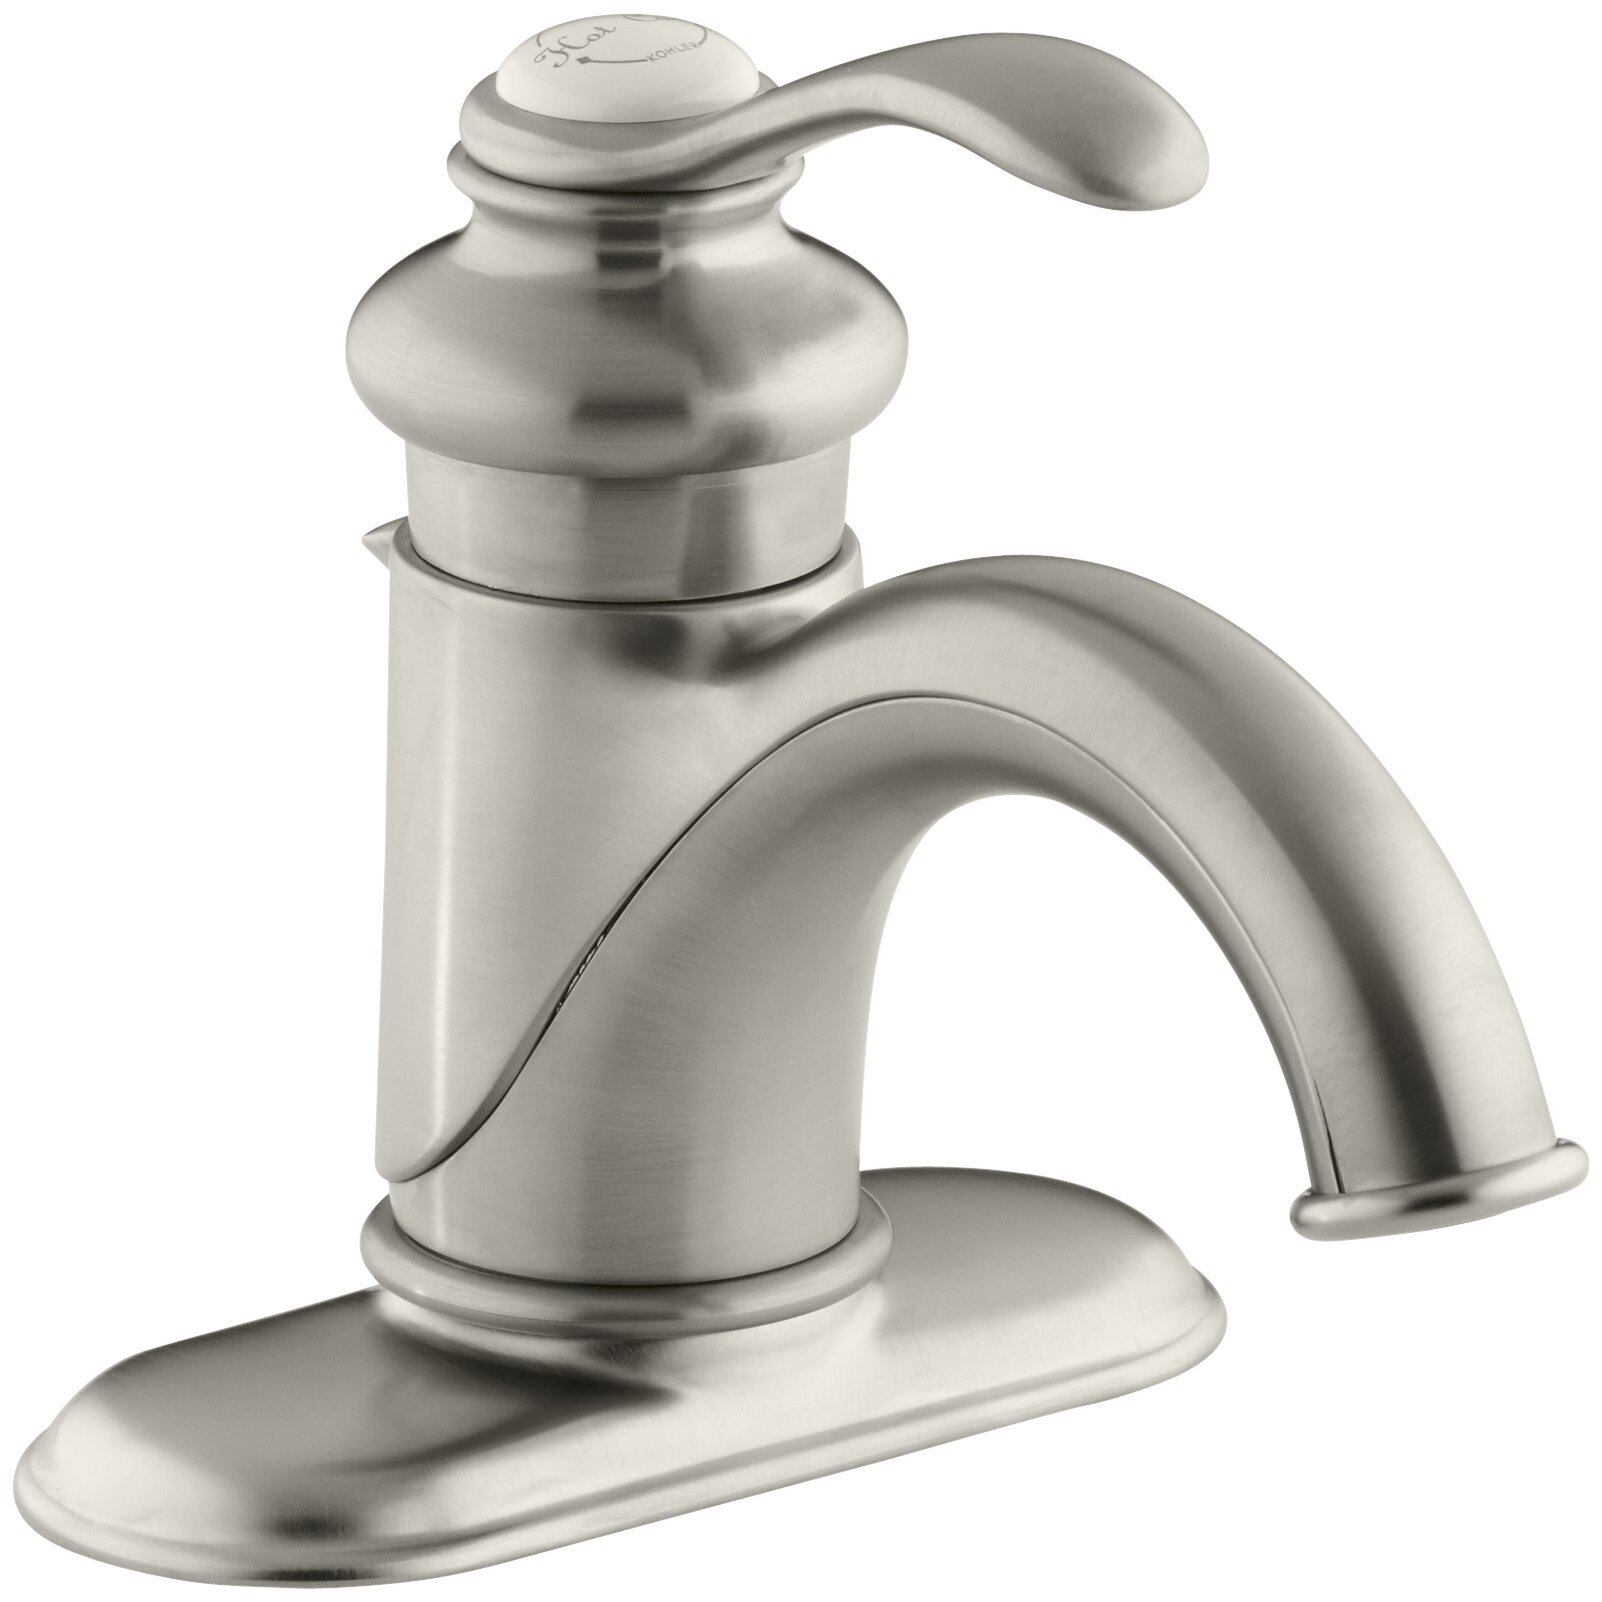 Kohler Bathroom Faucet Parts Bathroom Faucets Reviews: Kohler Fairfax Centerset Bathroom Sink Faucet With Single